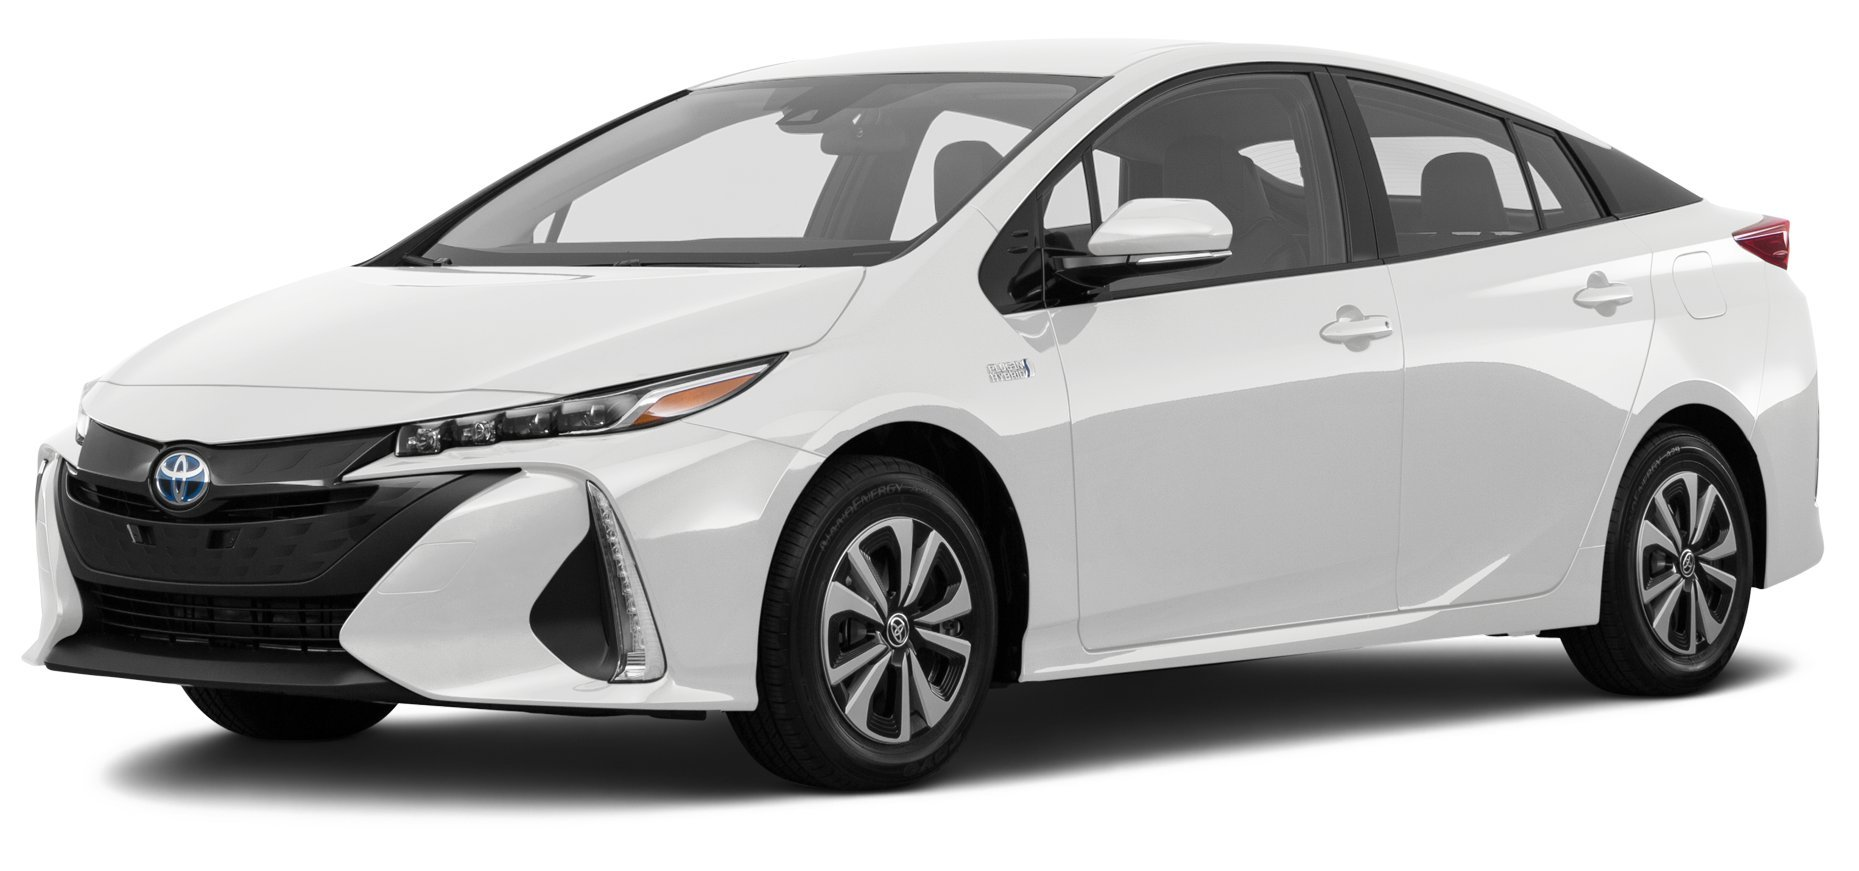 2017 toyota prius prime reviews images and. Black Bedroom Furniture Sets. Home Design Ideas